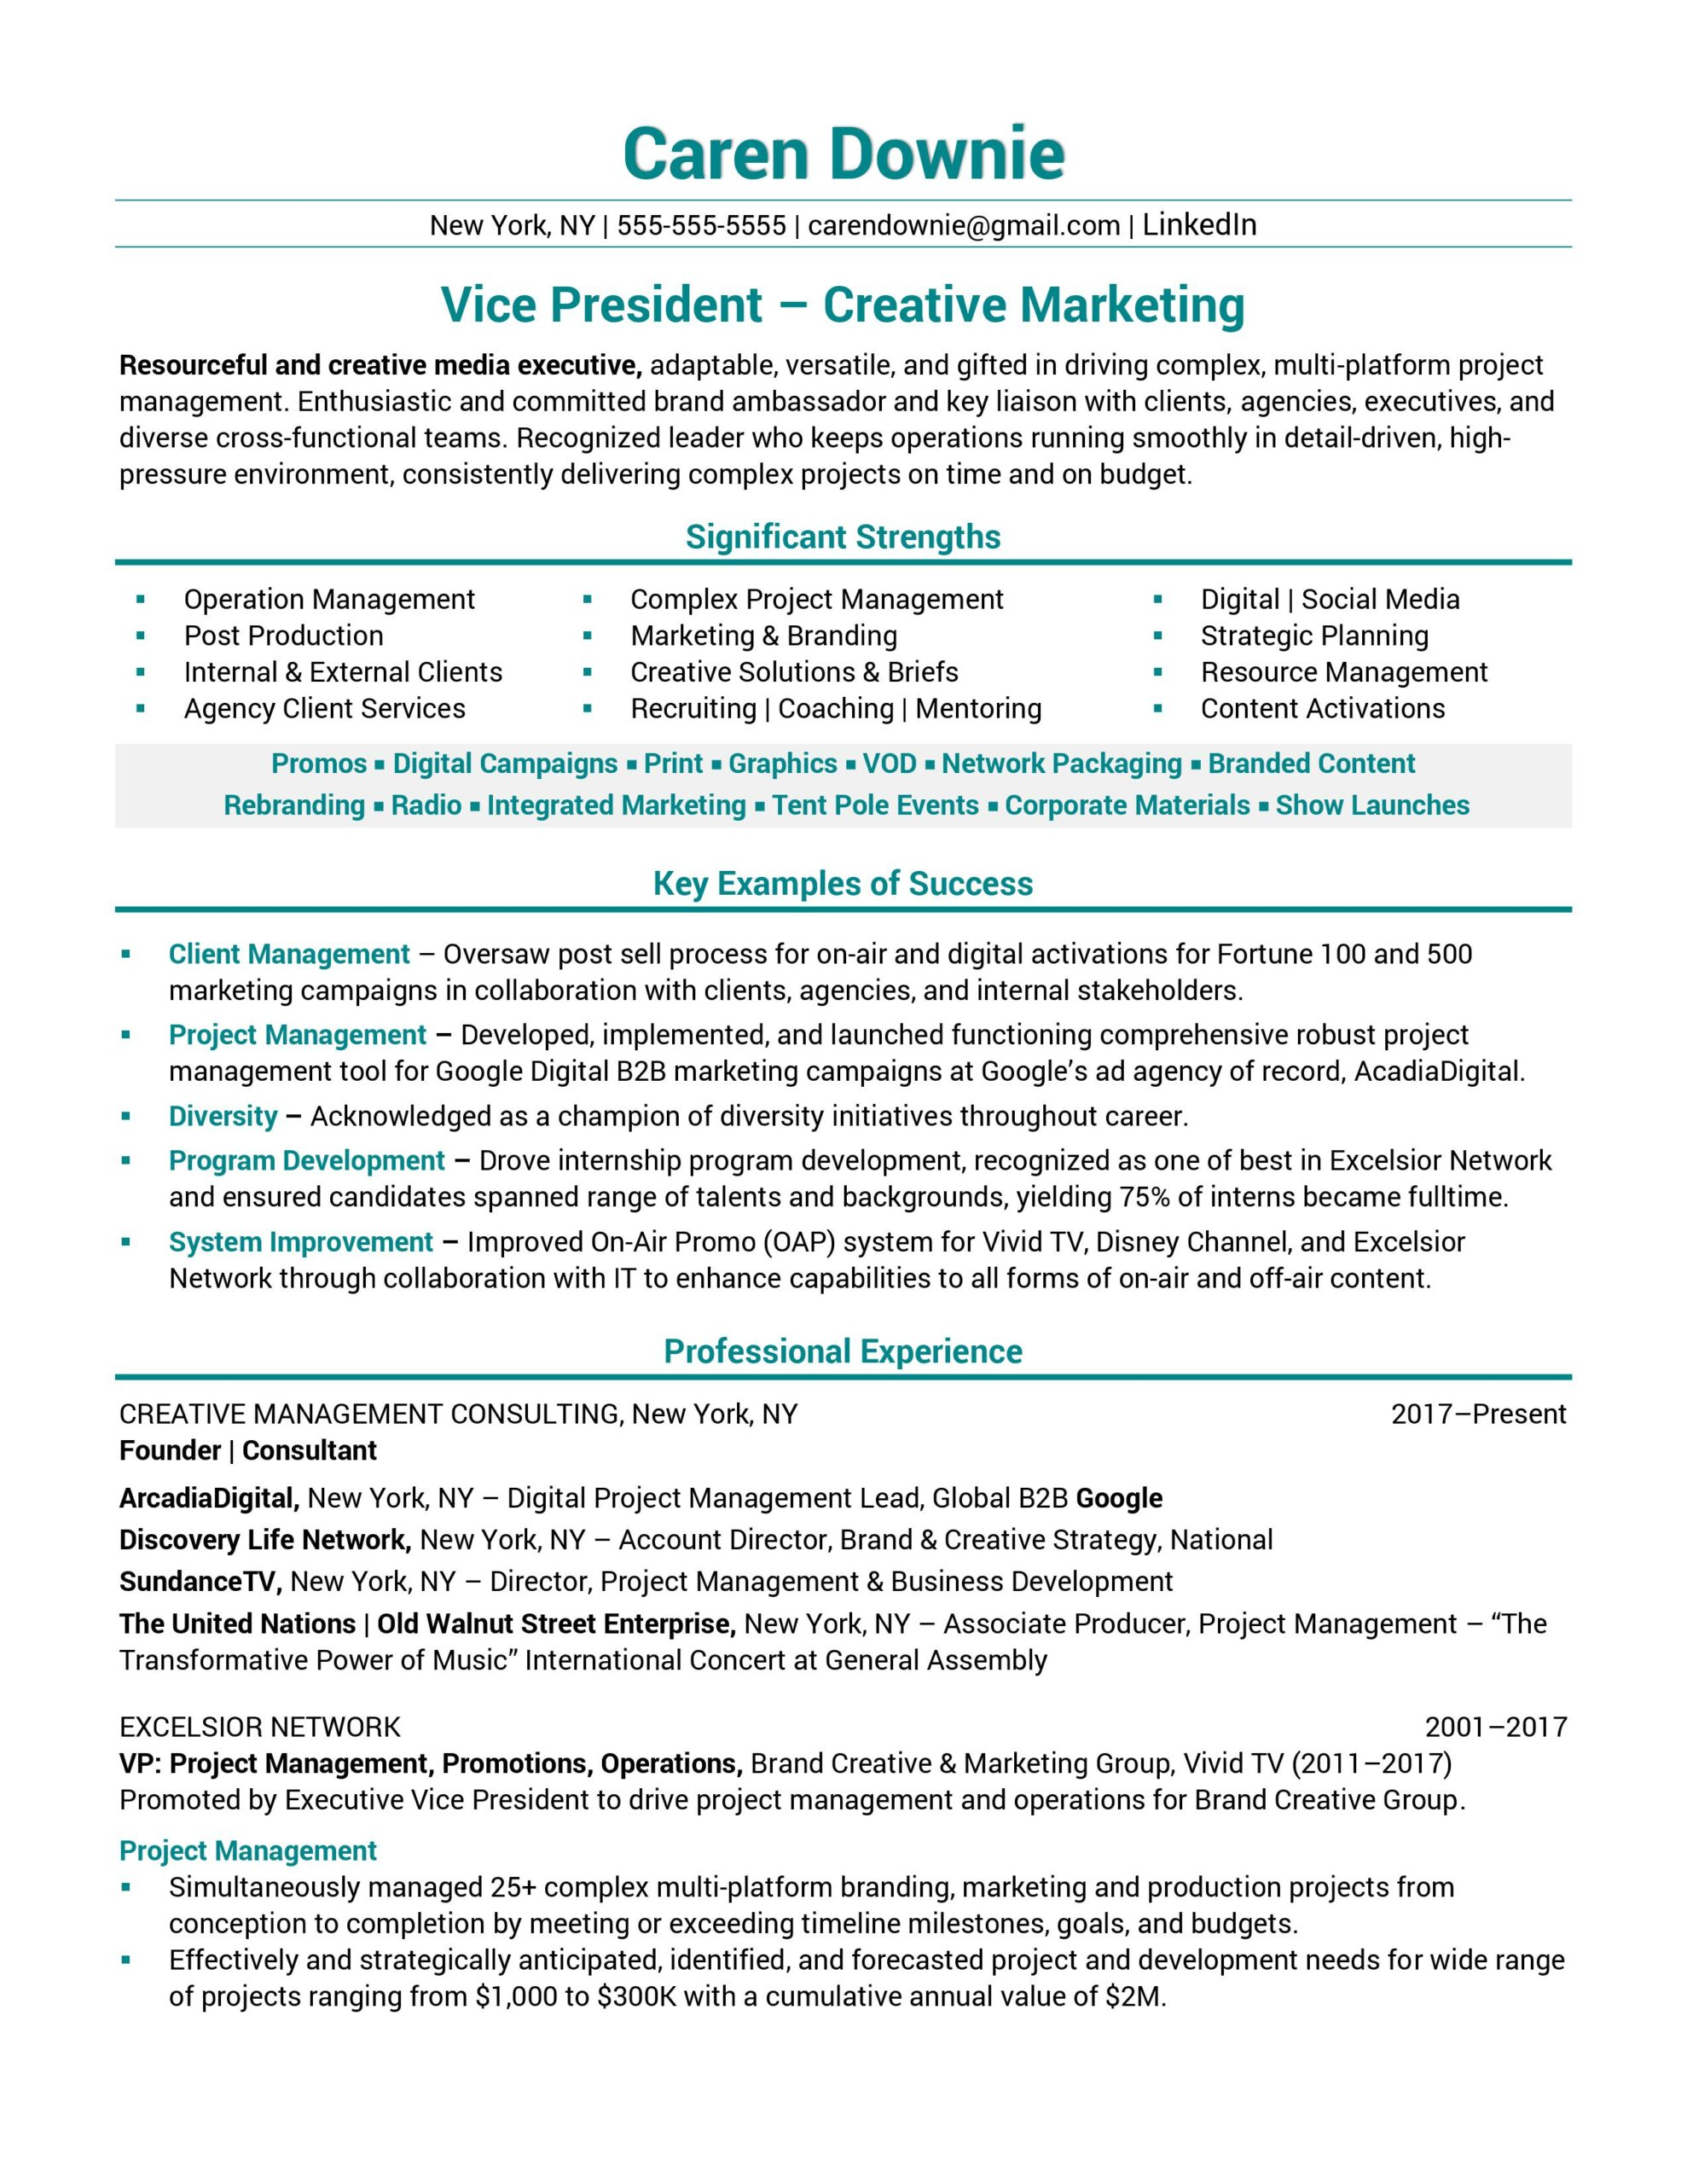 resume samples vice president of operations creative marketing sample ups driver software Resume Vice President Of Operations Resume